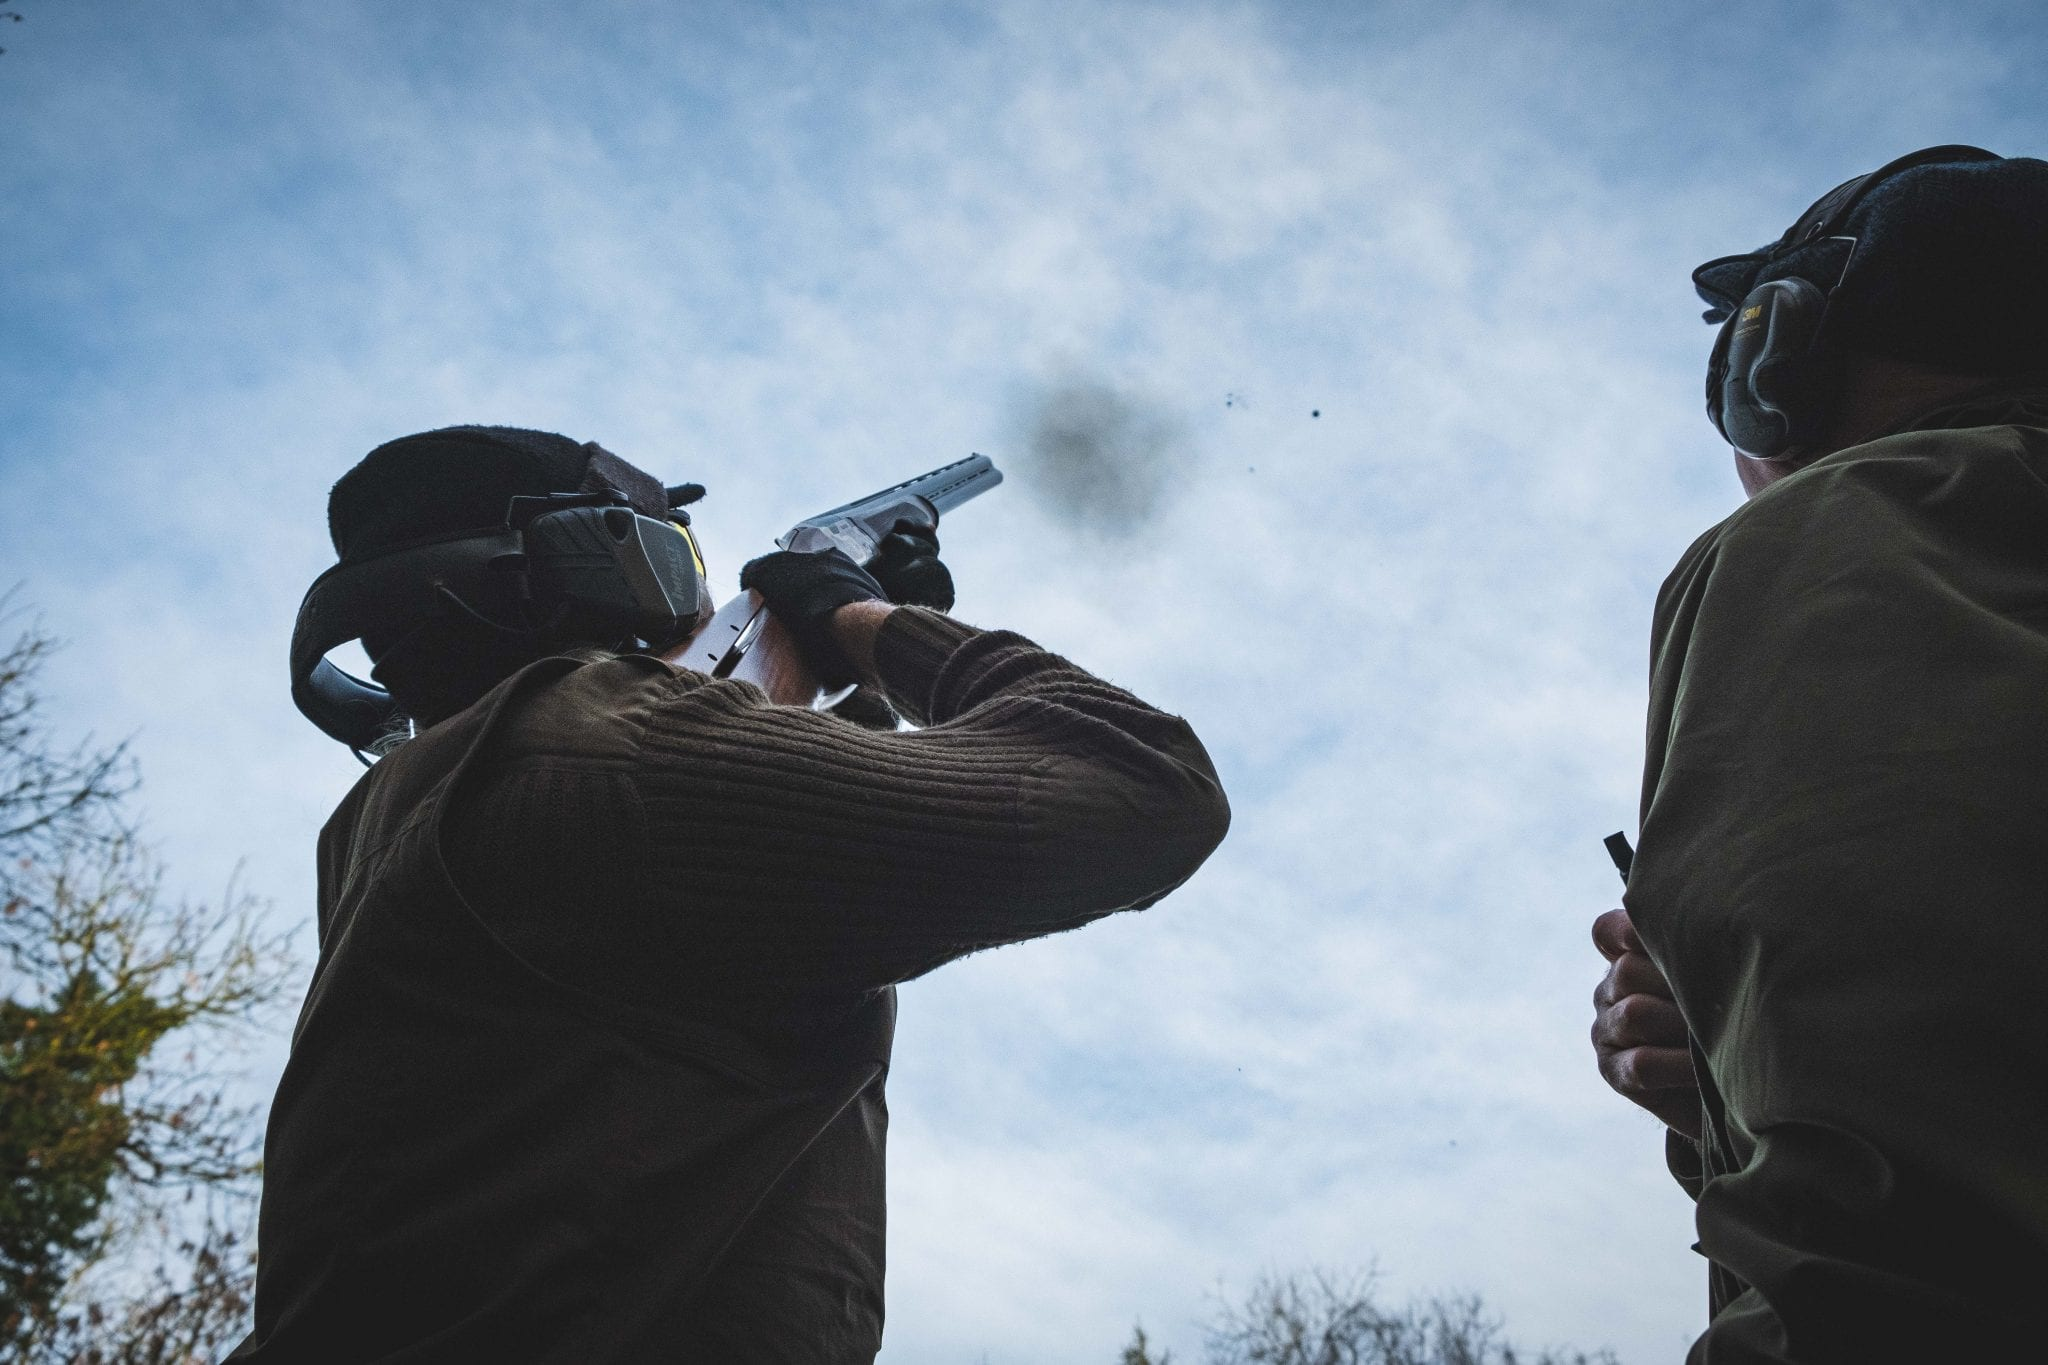 A customer clay pigeon shooting with an instructor at Lady's Wood